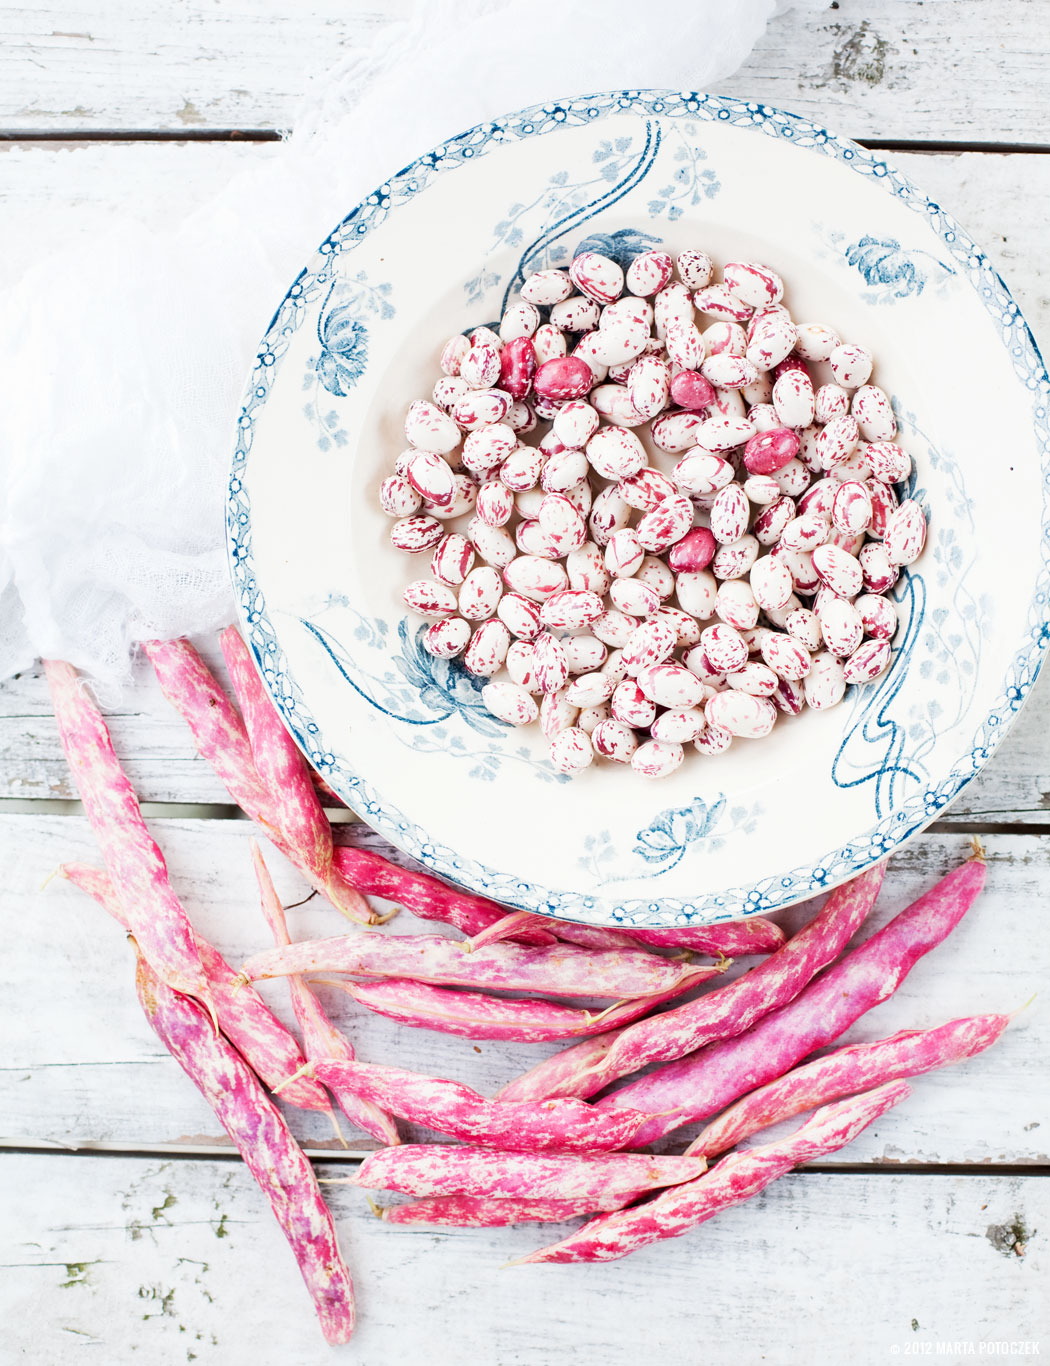 shelled_borlotti_beans